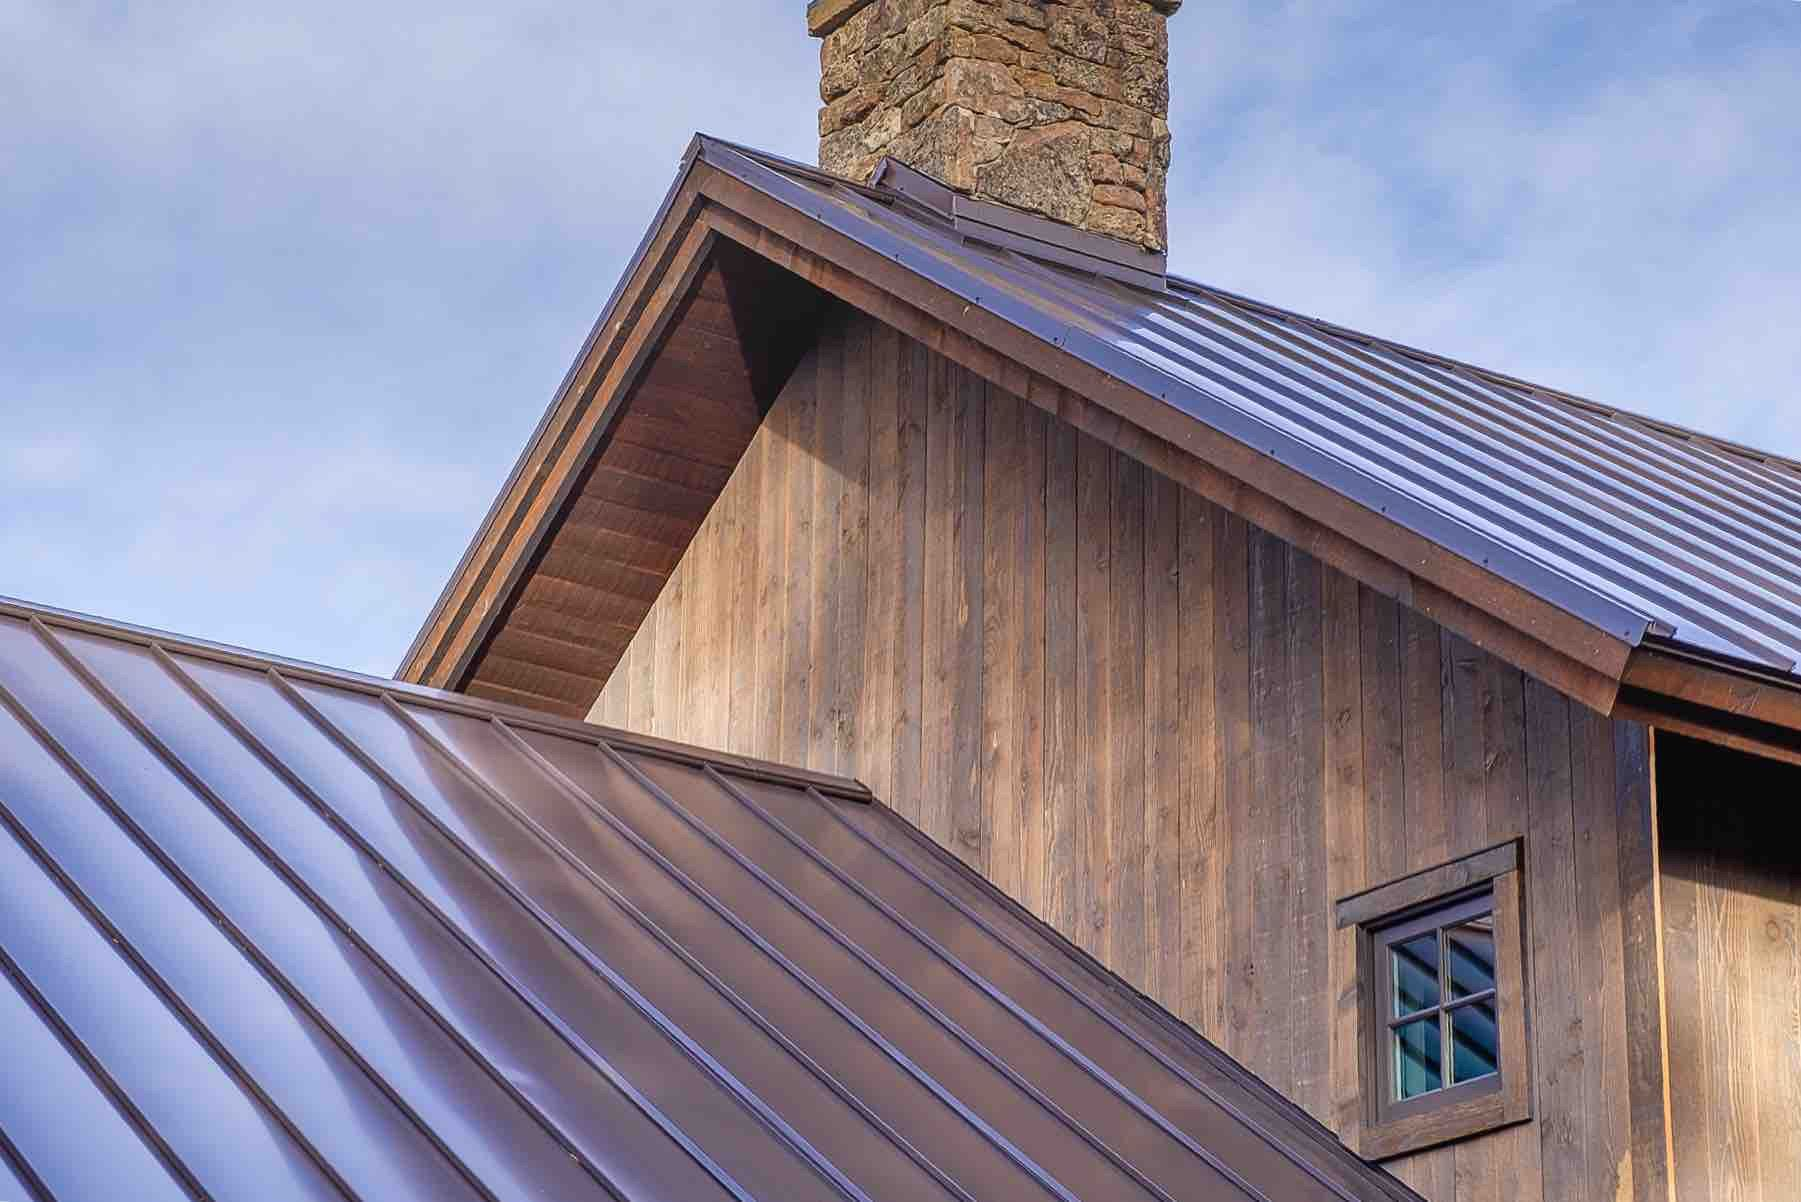 Ranchwood With Images Wood Siding Exterior Lake House Plans Reclaimed Barn Wood